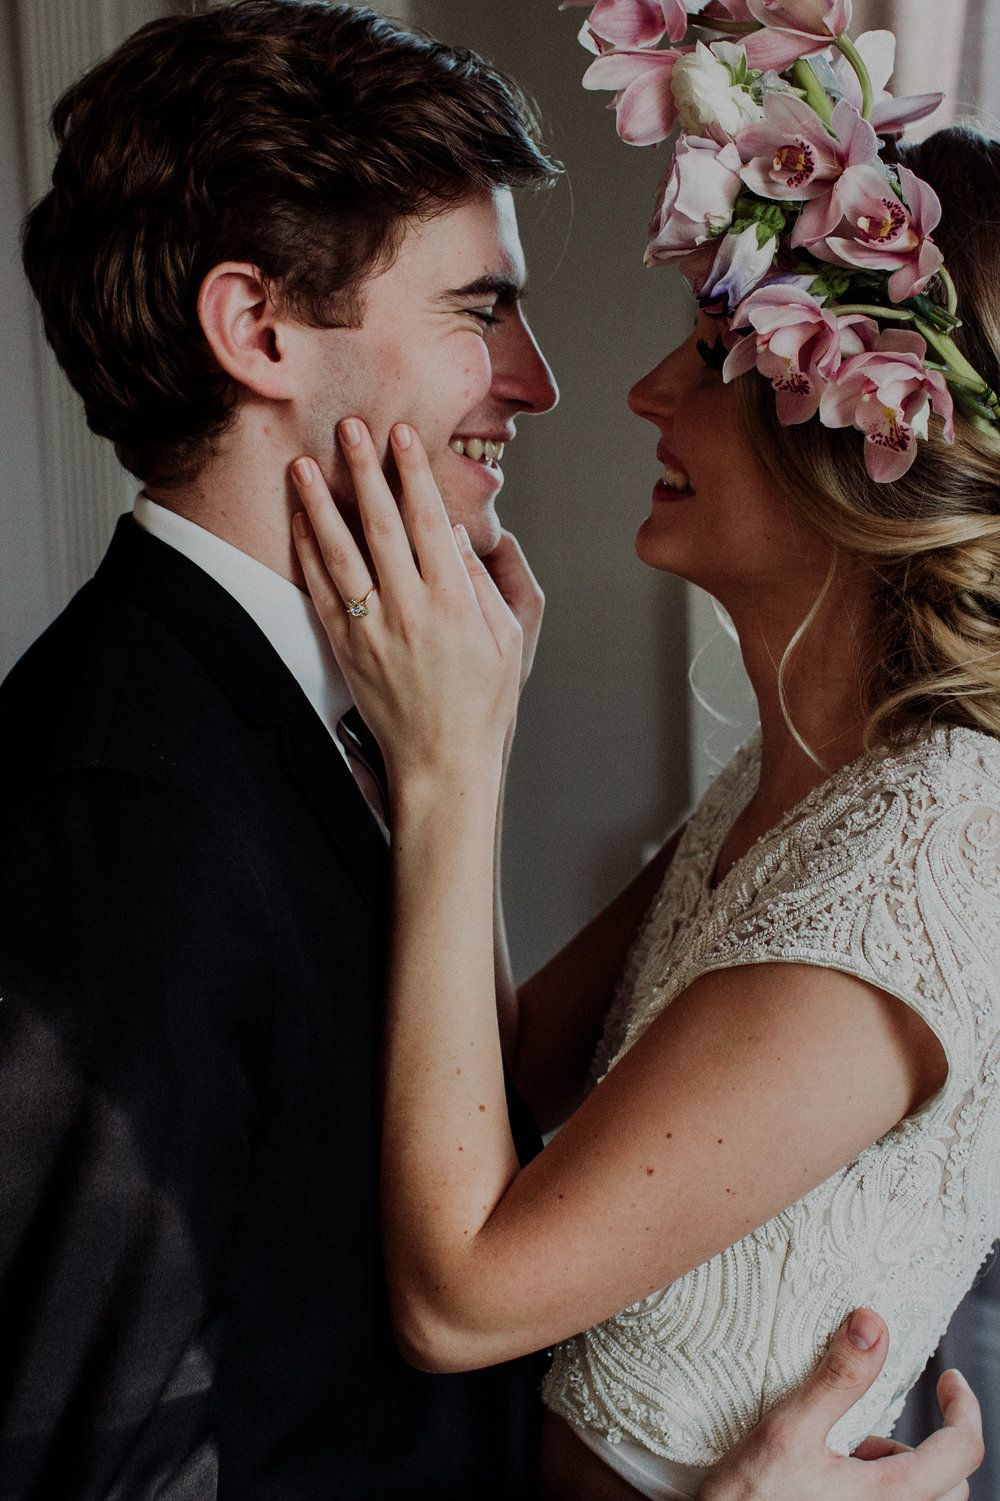 Pin by Caitlin Keller on Wedding Photo Examples Wedding